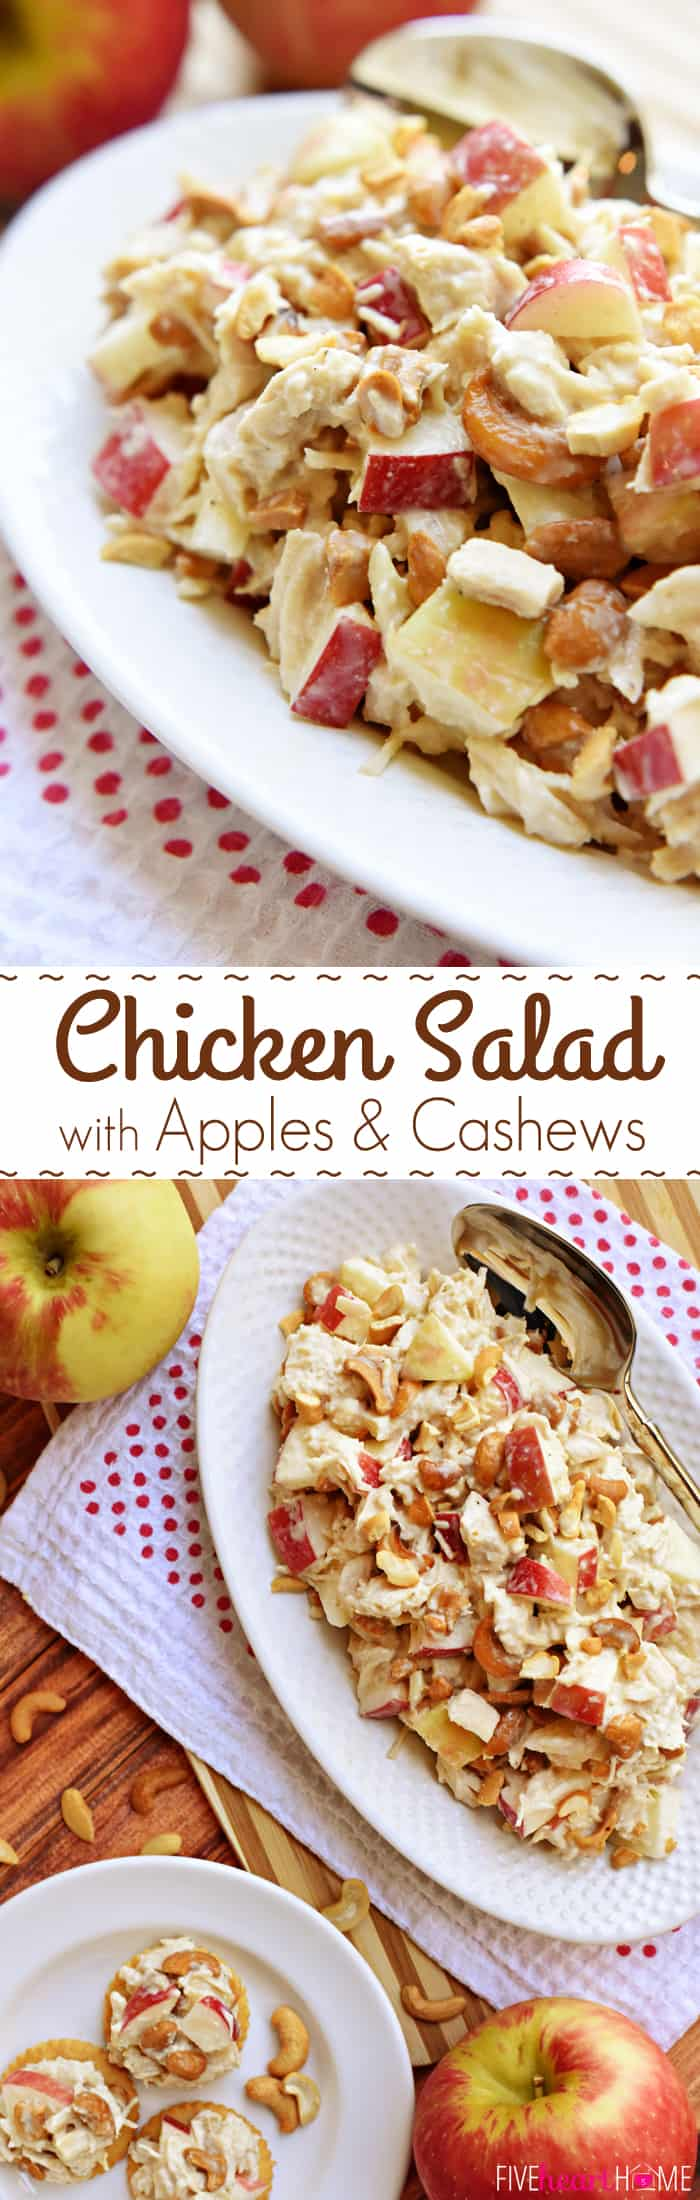 Chicken Salad with Apples and Cashews Collage with Text Overlay